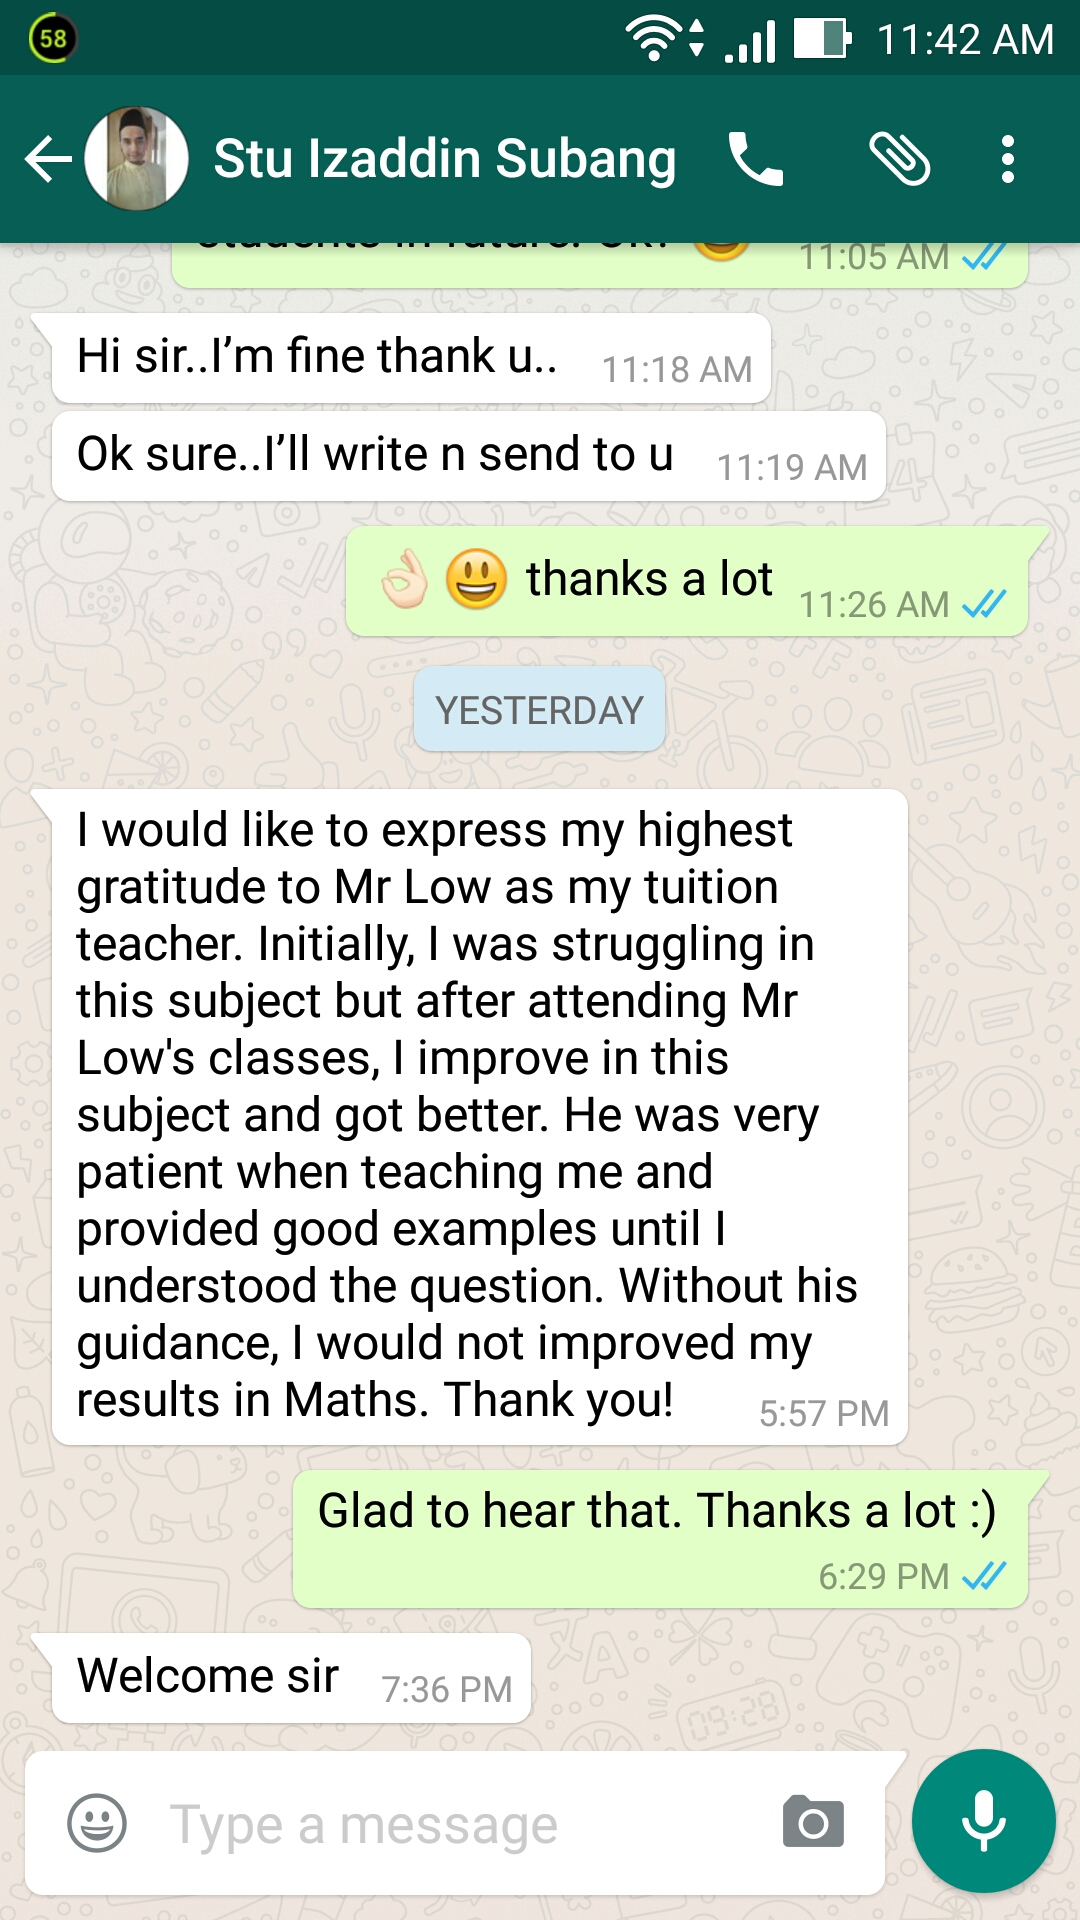 Business Maths (Diploma in Business) - Student Izaddin